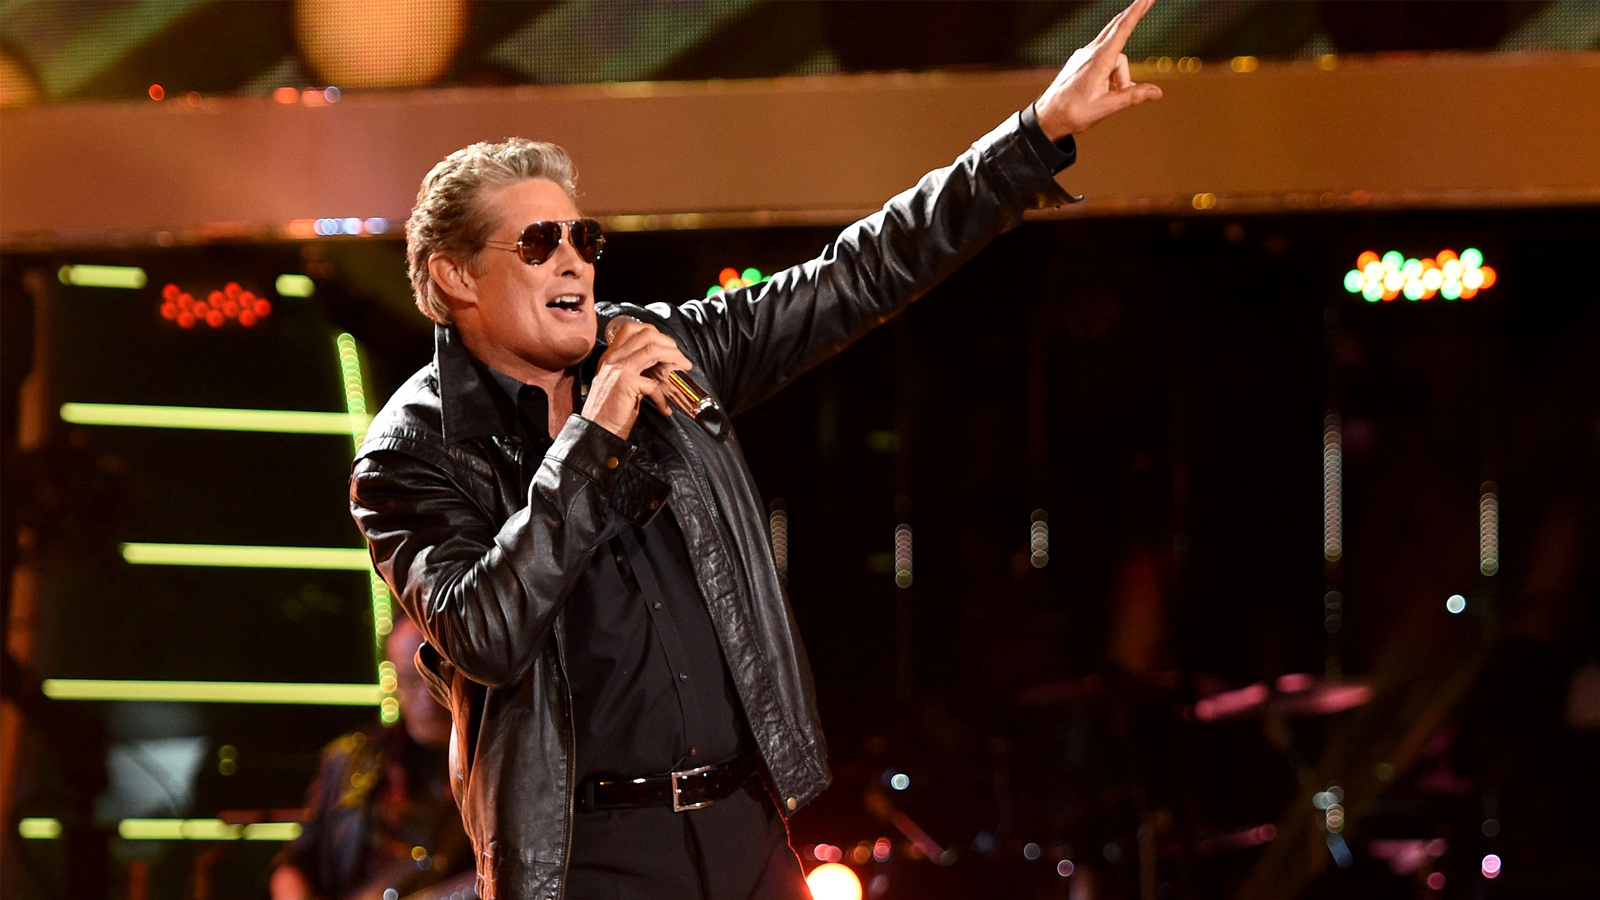 """David Hasselhoff Recording """"Some Heavy Metal Songs"""" for New Album"""